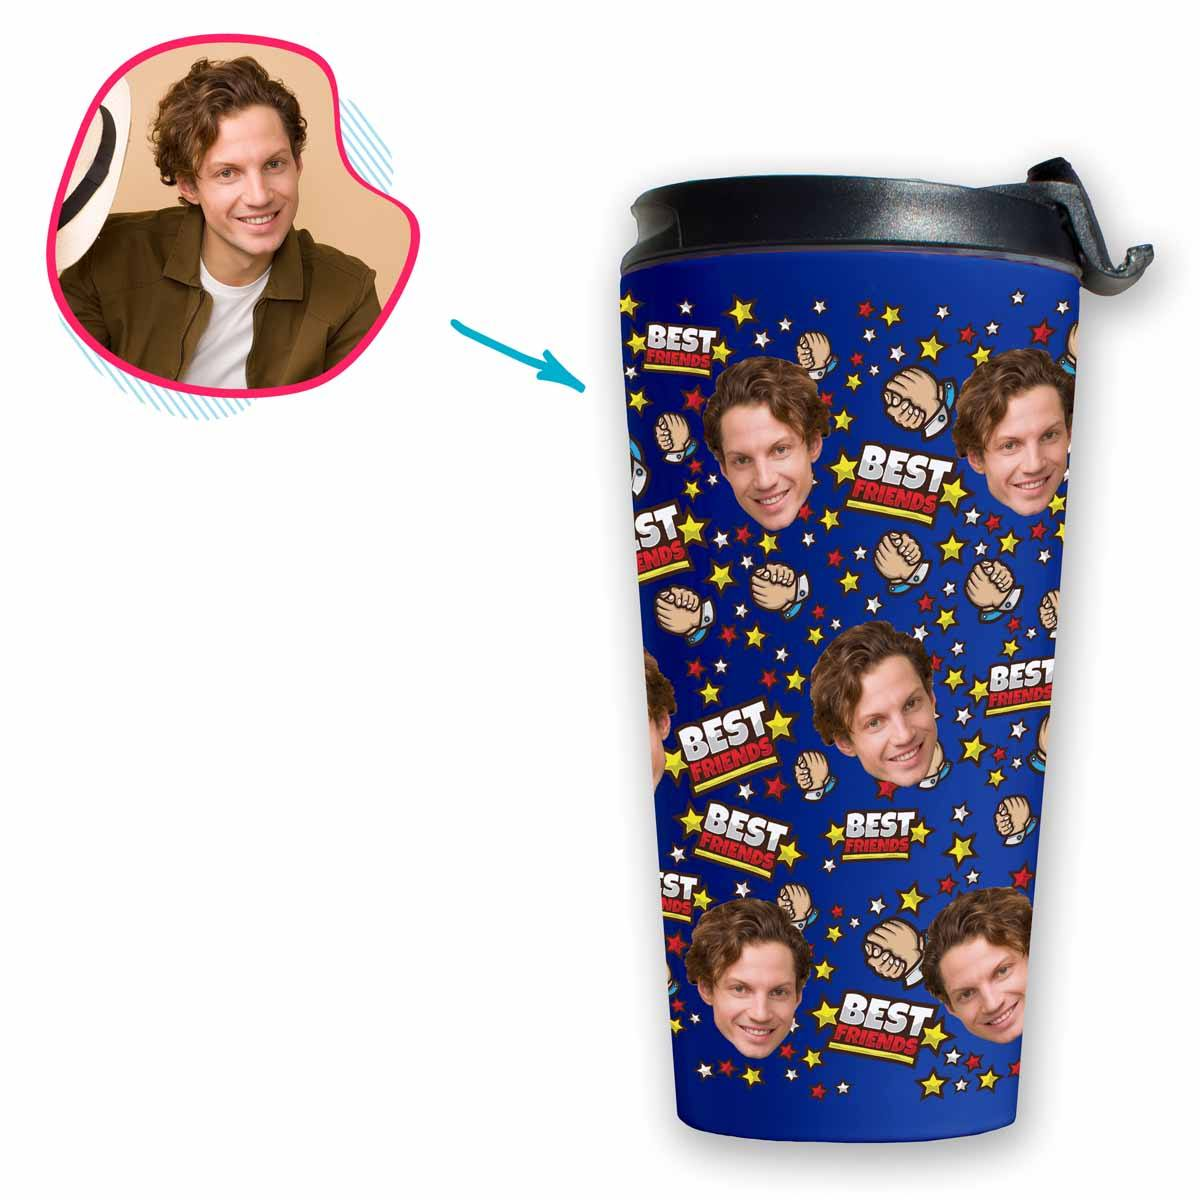 darkblue Best Friends travel mug personalized with photo of face printed on it